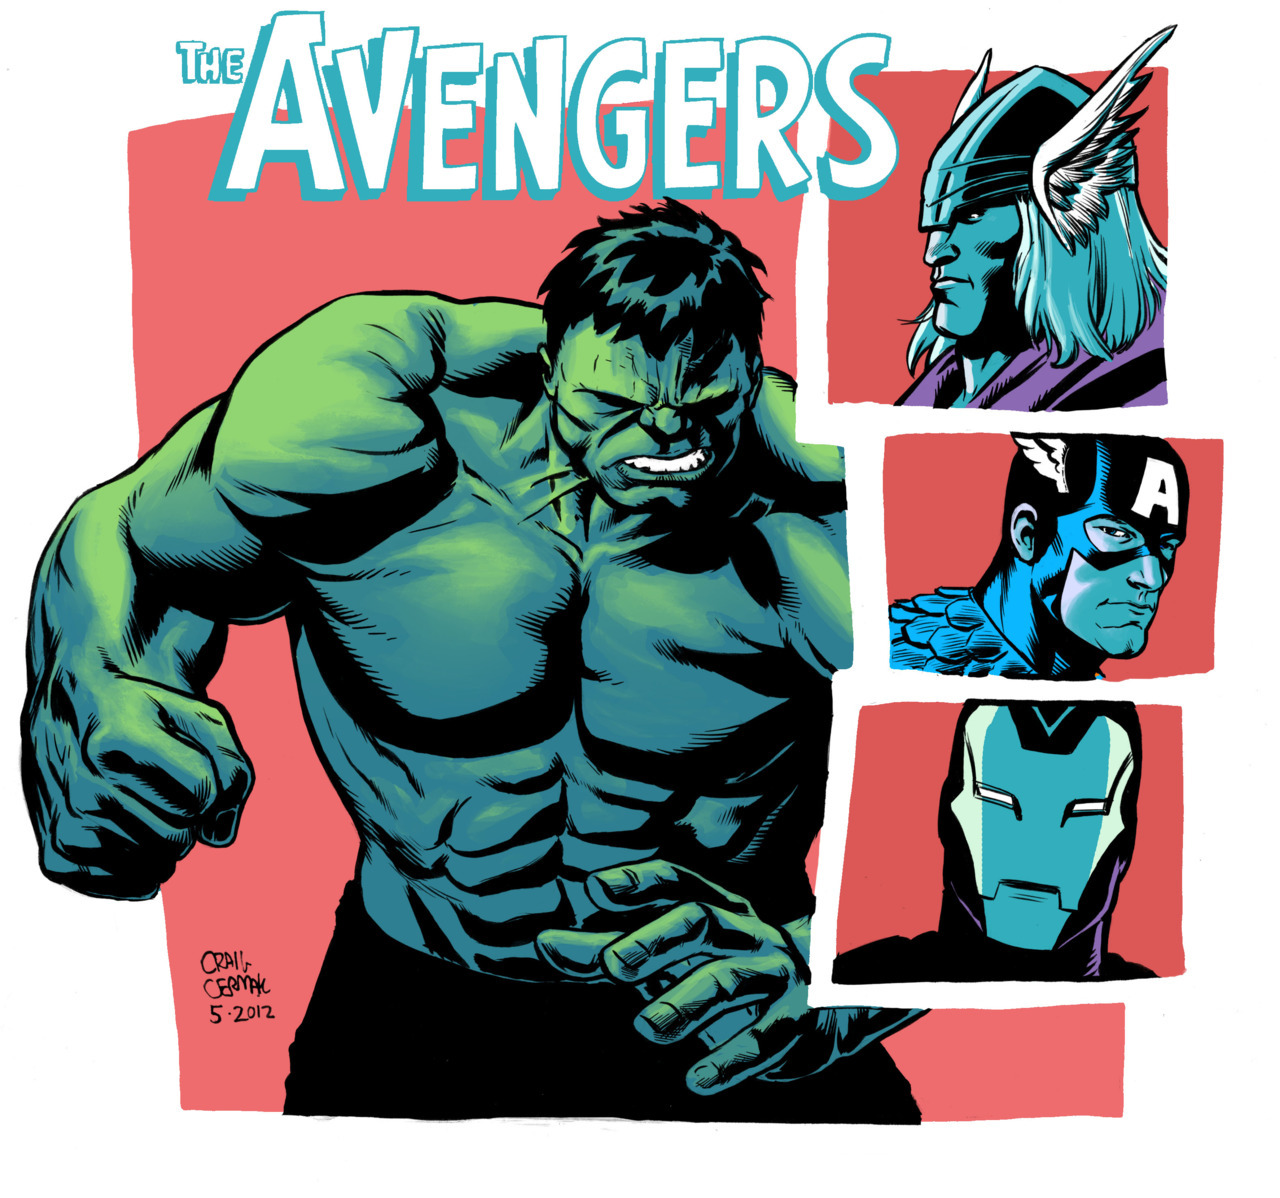 Avengers piece, done for the return of the Omega Sketch blog. Check out all the others here: http://omegasketch.blogspot.com/  Had a lot of fun drawing the Hulk's face and Cap's always a good time.